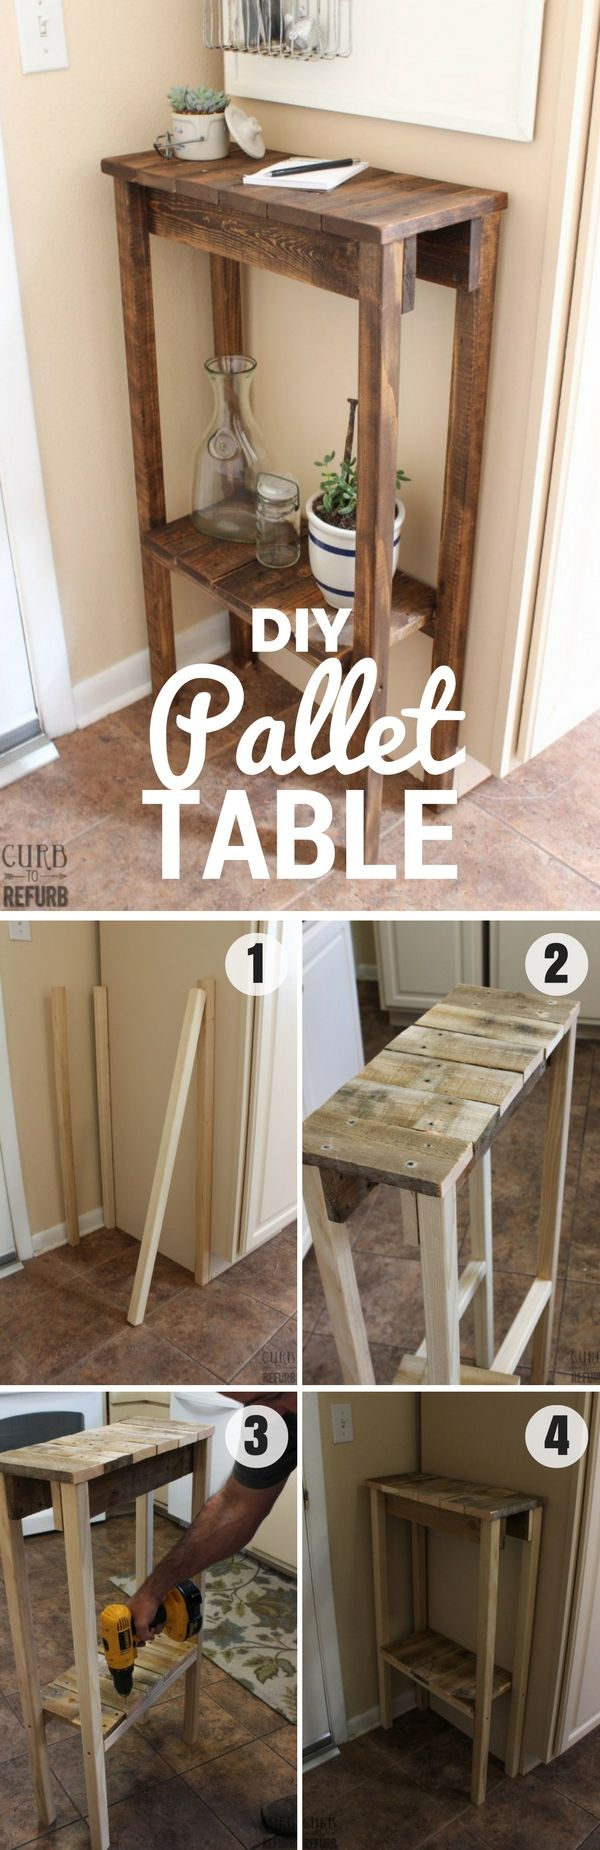 Check out how to build this easy DIY Pallet Table @Industry Standard Design